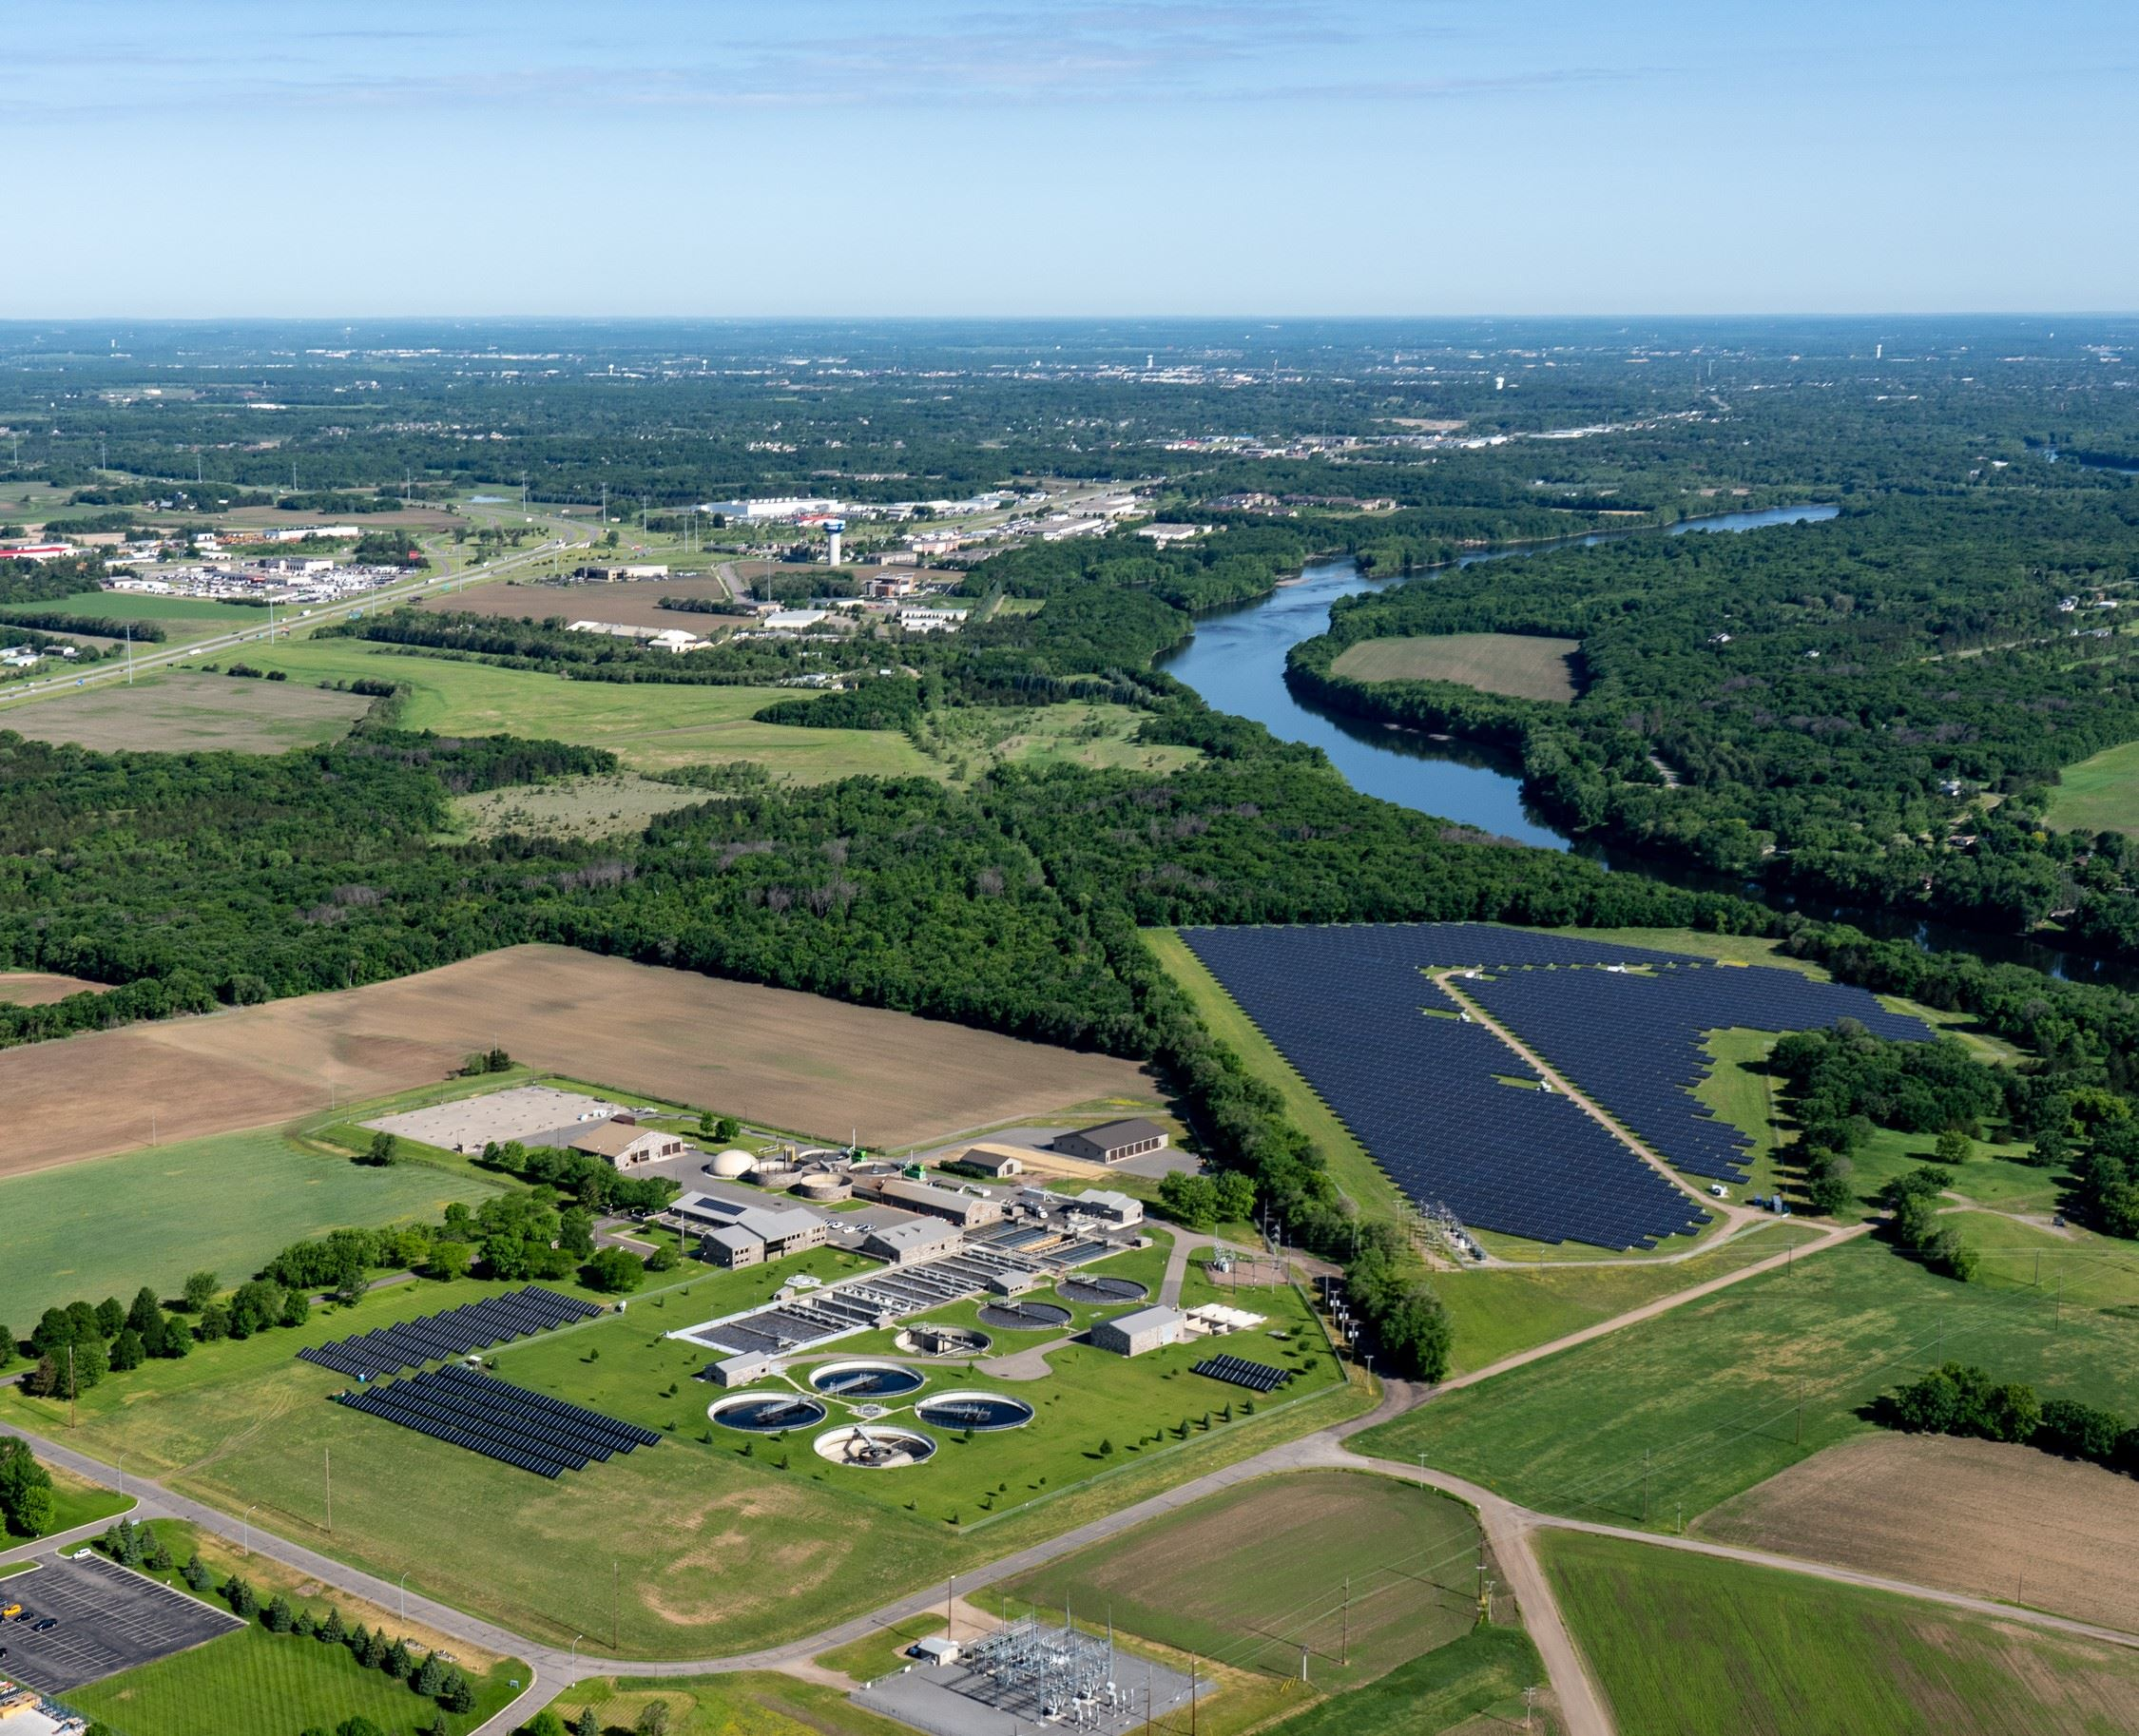 Aerial view of buildings, water treatment ponds, solar panels, equipment, surrounding fields, river